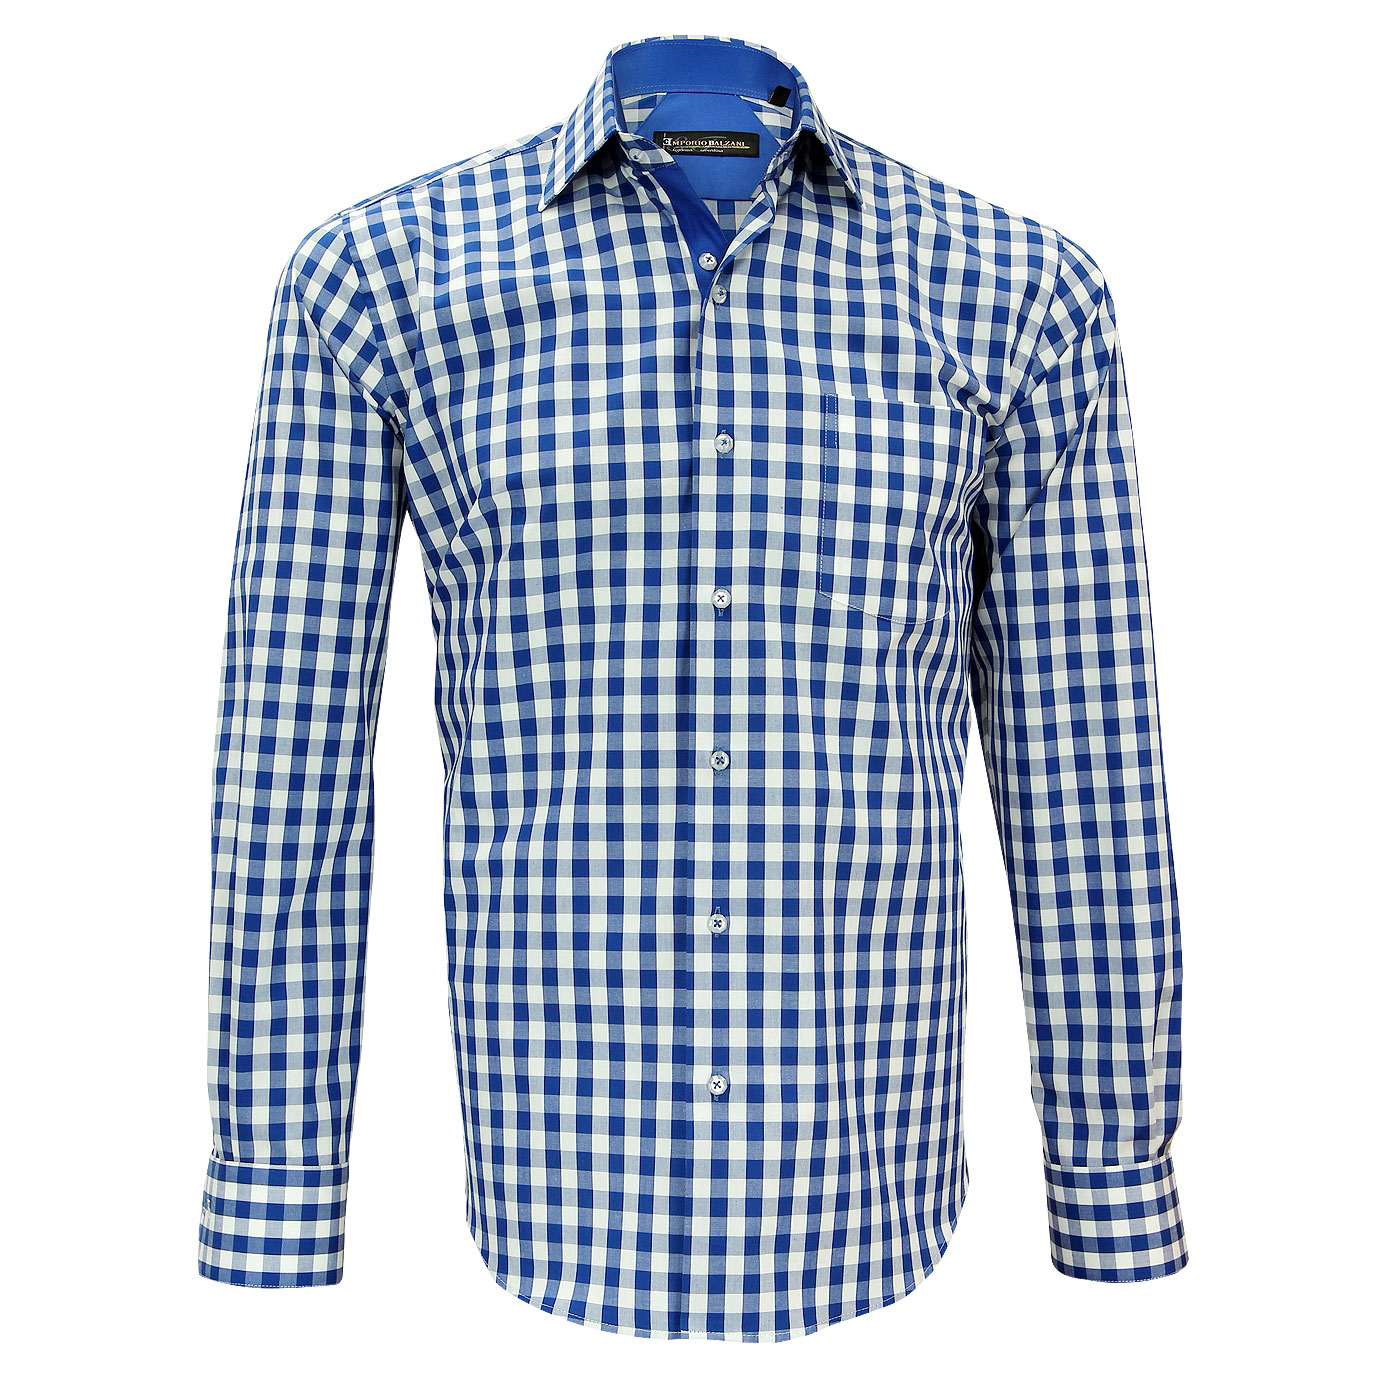 Vichy Shirt & Plaid Shirts Exclusive to webmenshirts.com